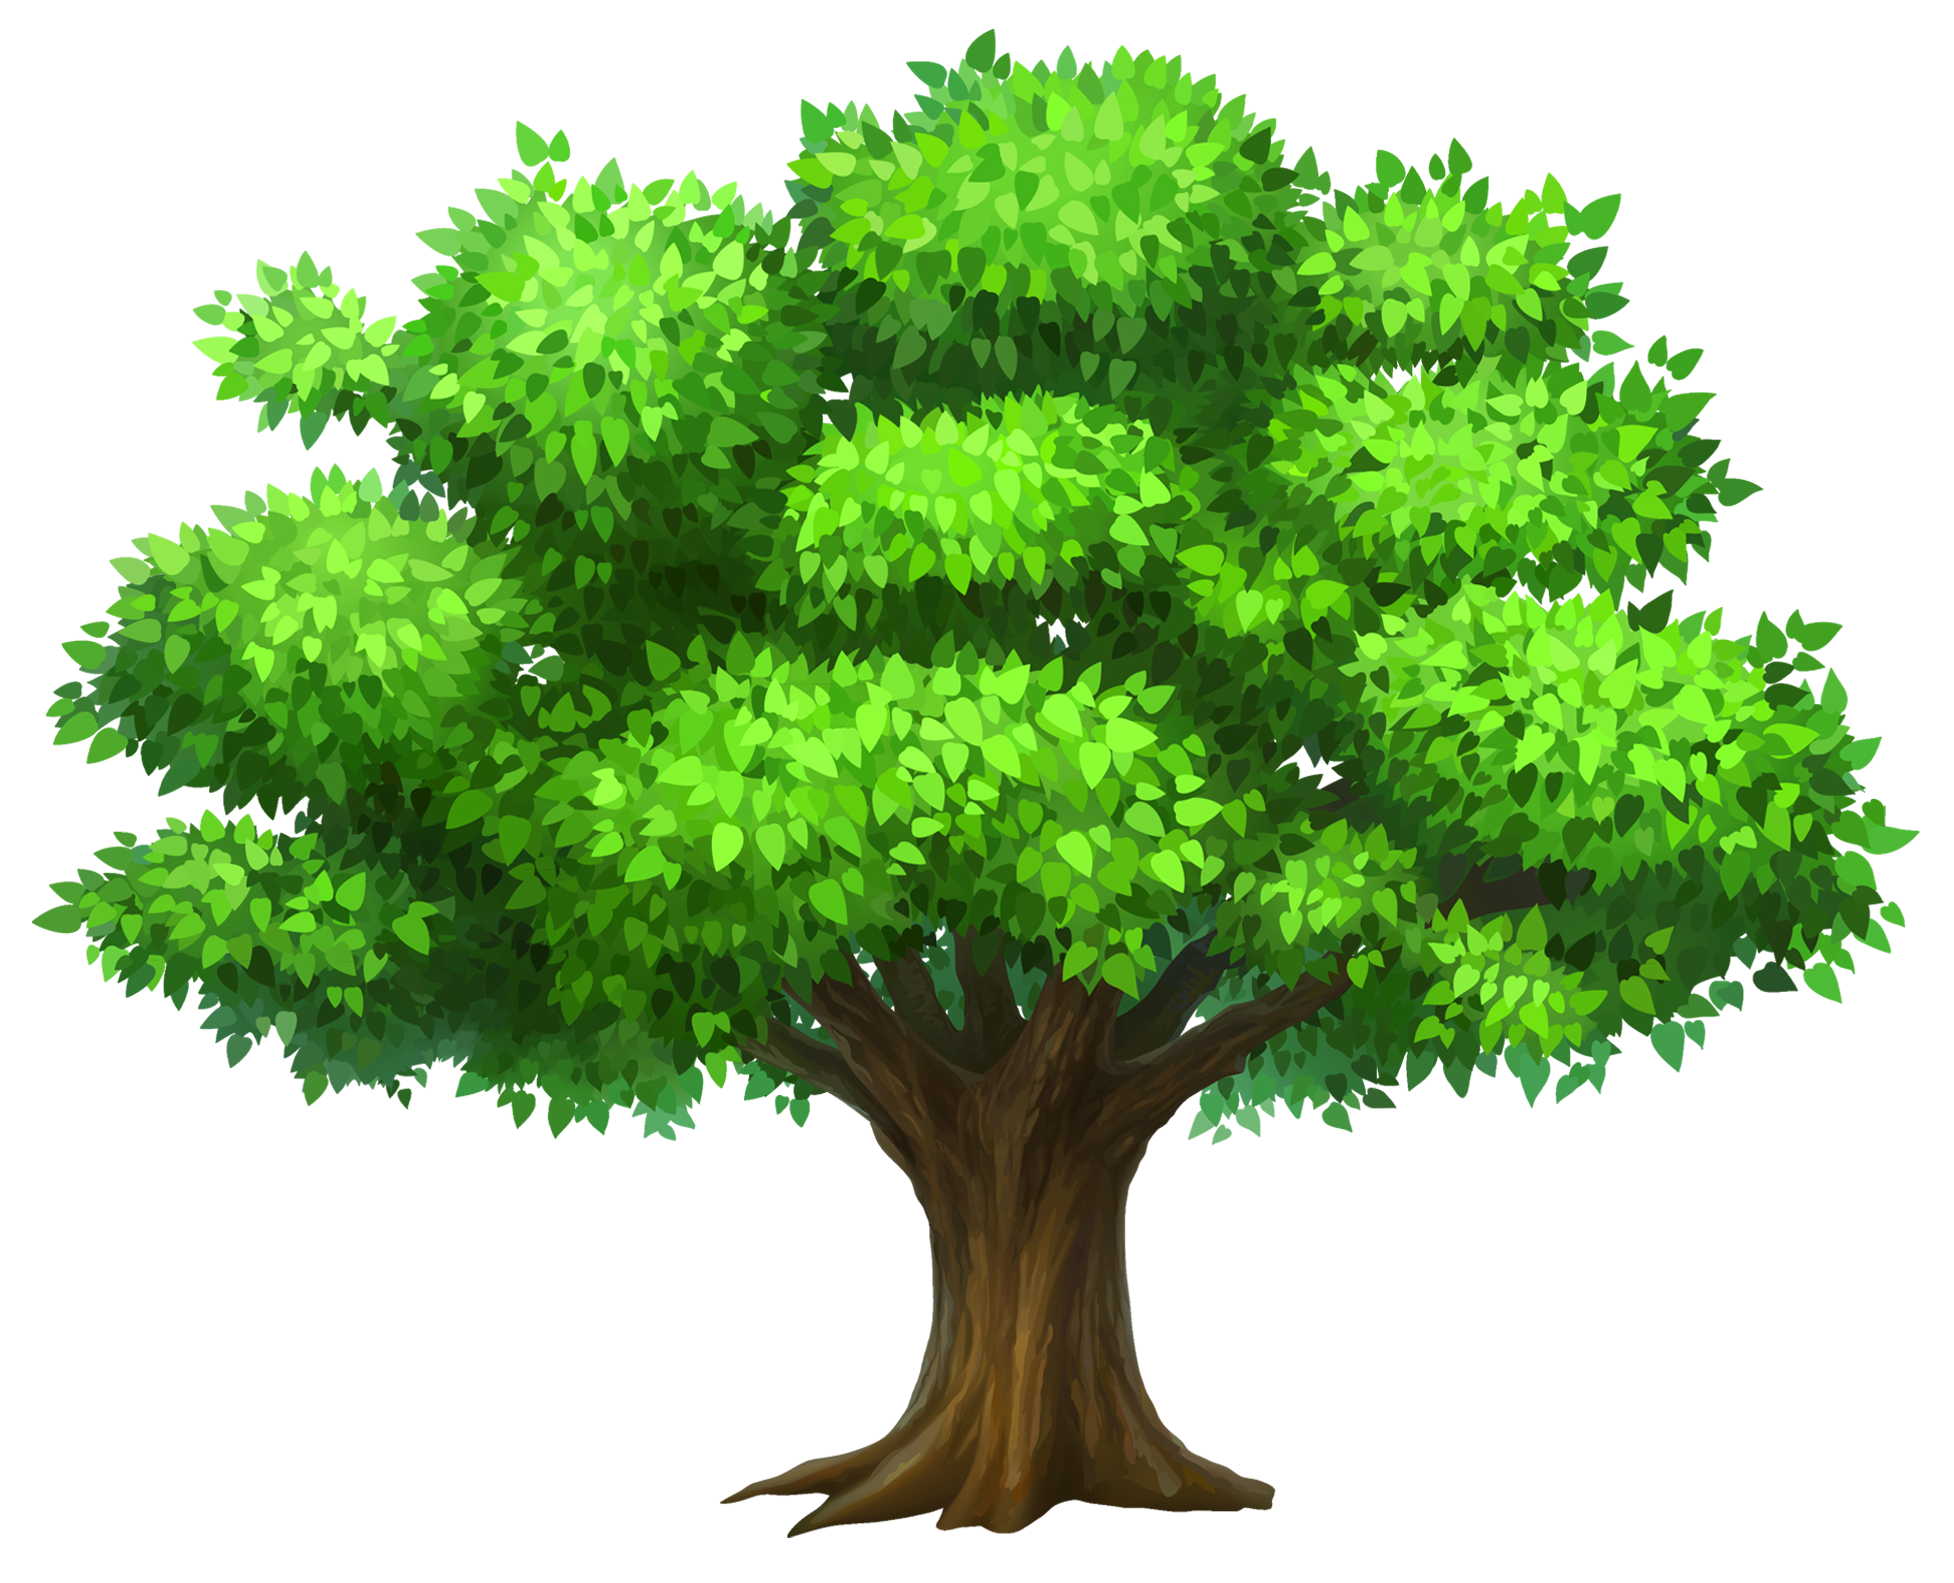 pin Rainforest clipart narra tree #6 - Narra Tree PNG